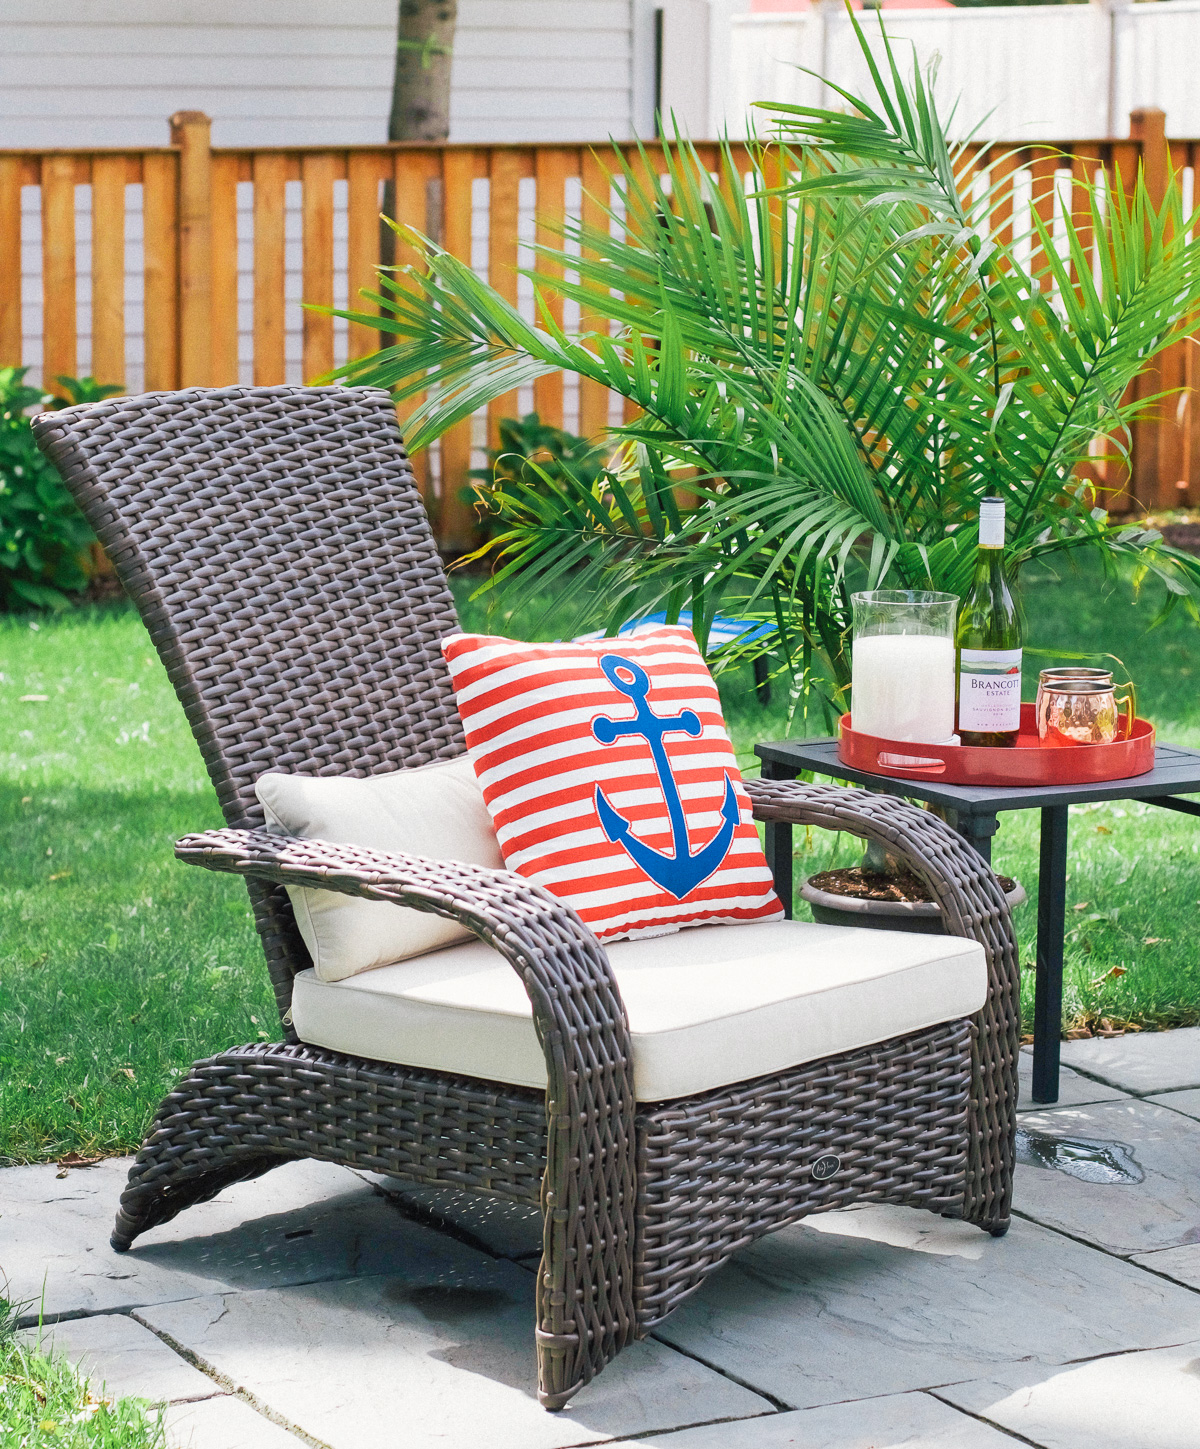 Ping The Kmart Patio Furniture Selection Online Was Quick And Included Free Shipping Don